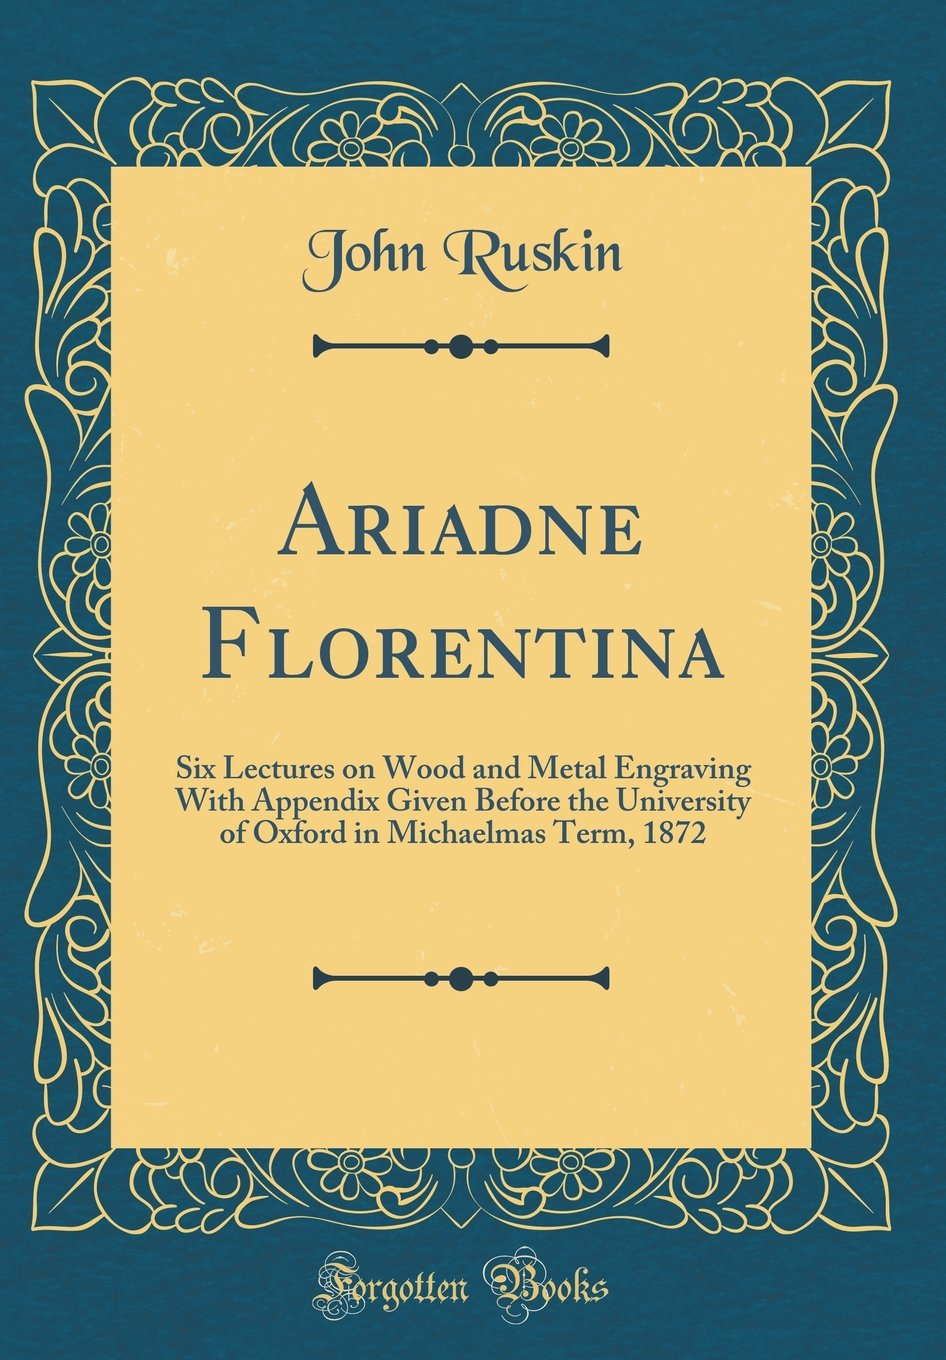 Download Ariadne Florentina: Six Lectures on Wood and Metal Engraving With Appendix Given Before the University of Oxford in Michaelmas Term, 1872 (Classic Reprint) pdf